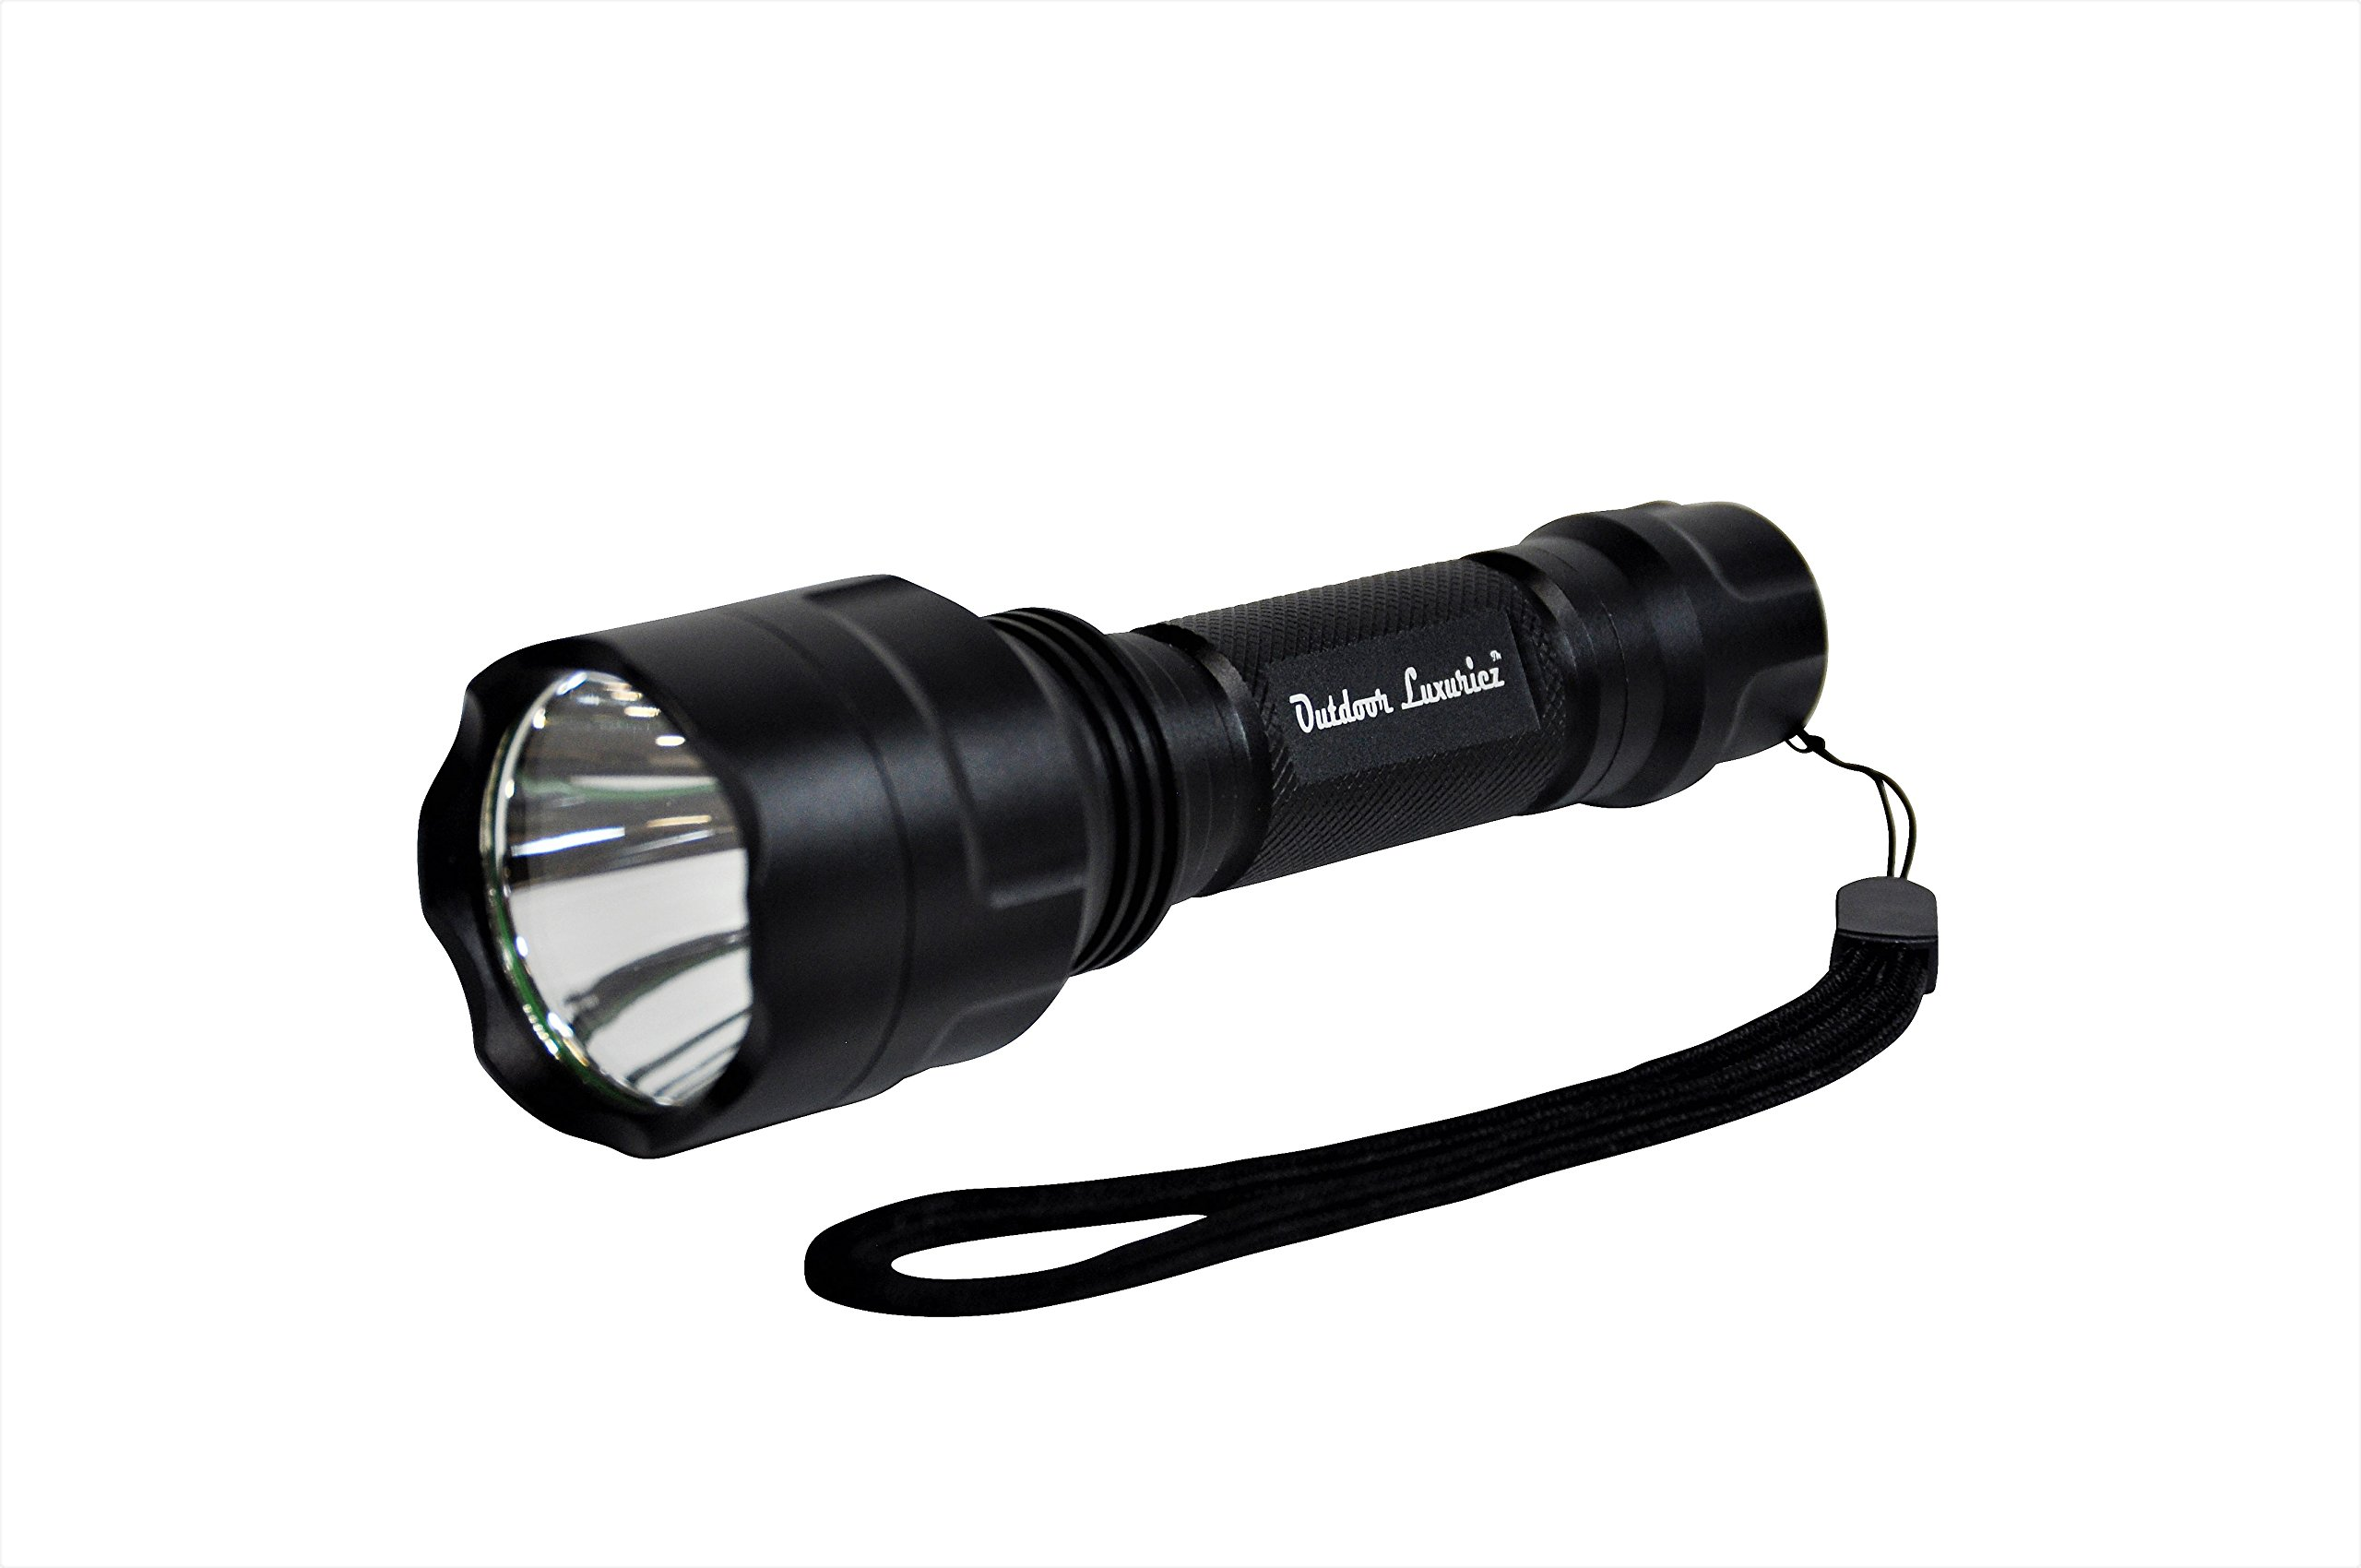 Military Grade Tactical Defense Camping Emergency - Compact IP68 Waterproof High Lumen Rechargeable Handheld LED Flashlight - Outdoor Luxuriez by Outdoor Luxuriez (Image #7)